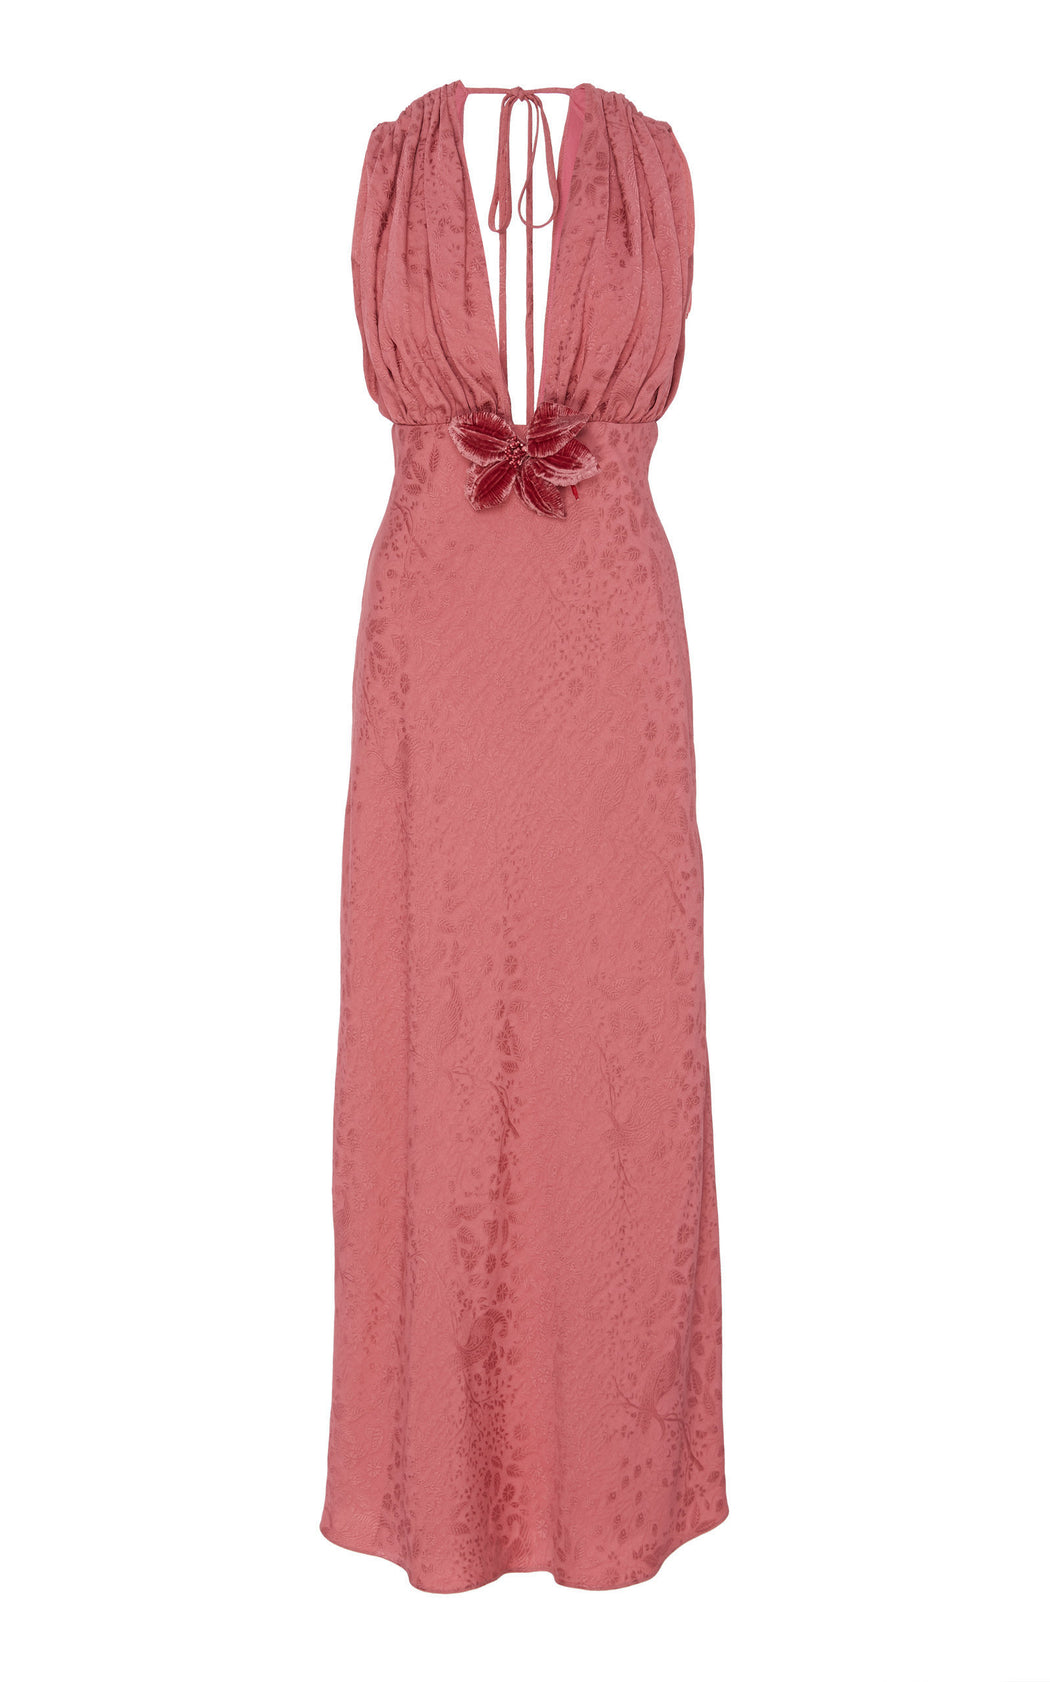 Eleanor Pink Floral Brocade Dress